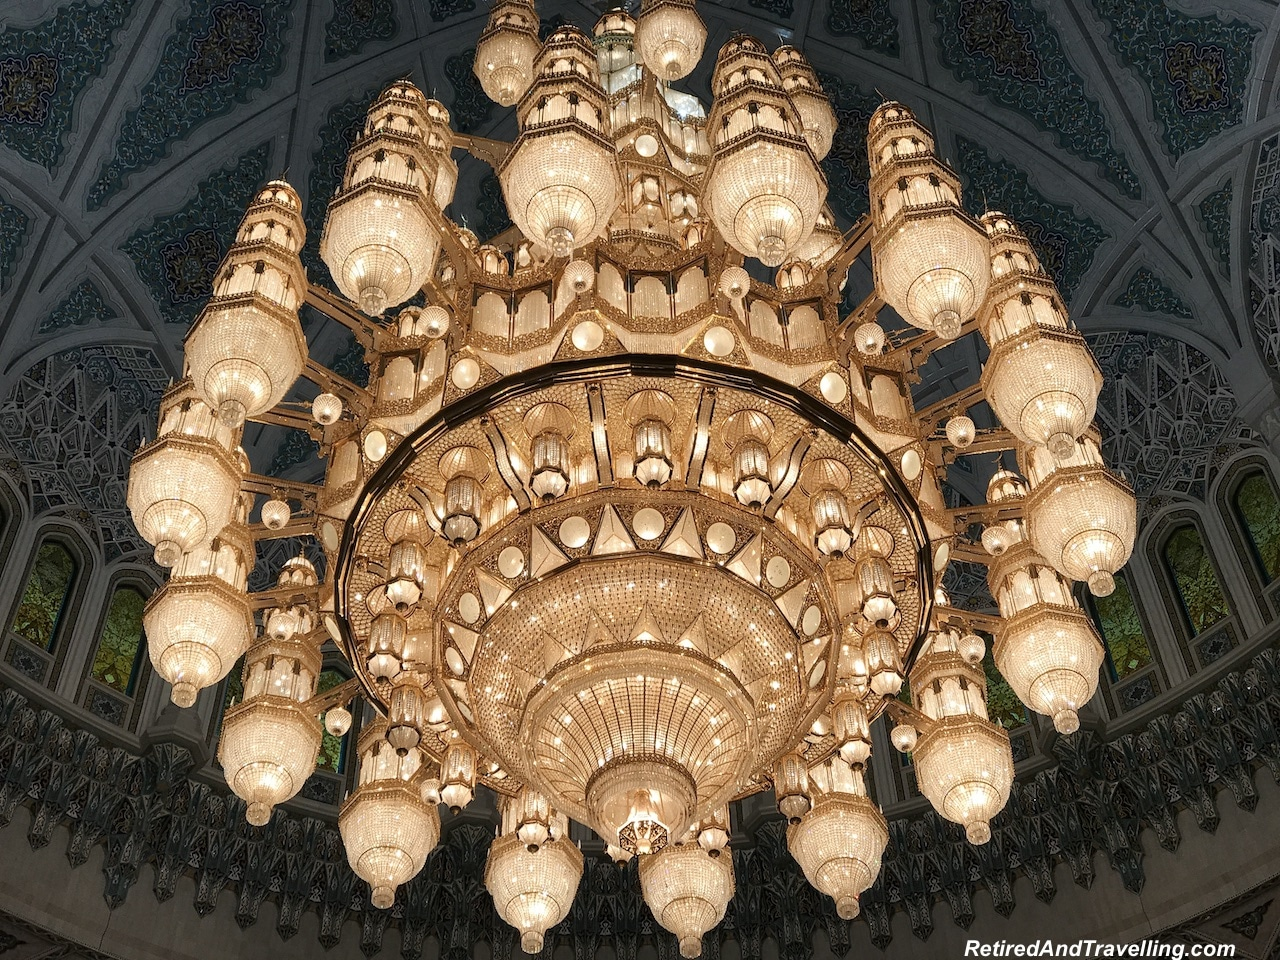 Main Prayer Room Dome Chandelier - Grand Mosque in Muscat.jpg